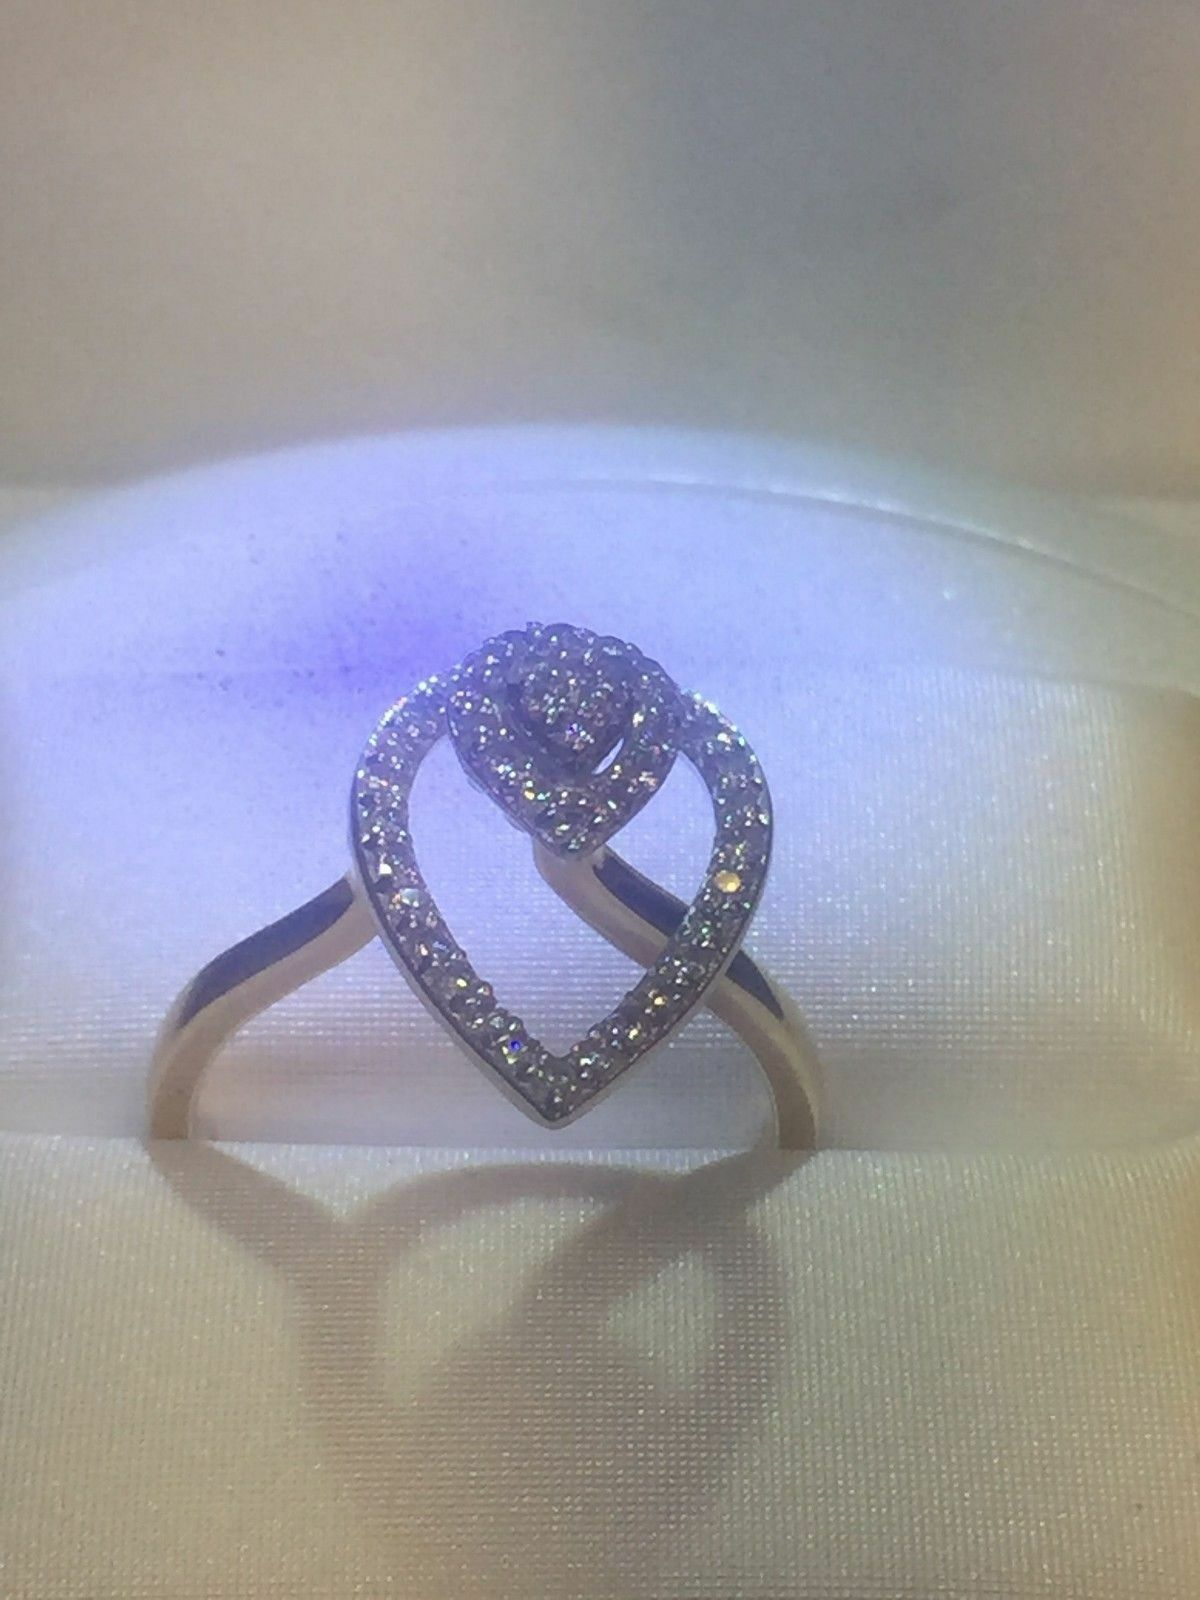 0.36 Cts Round Brilliant Cut Diamonds Tear Drop Ring In Solid Certified 14K gold